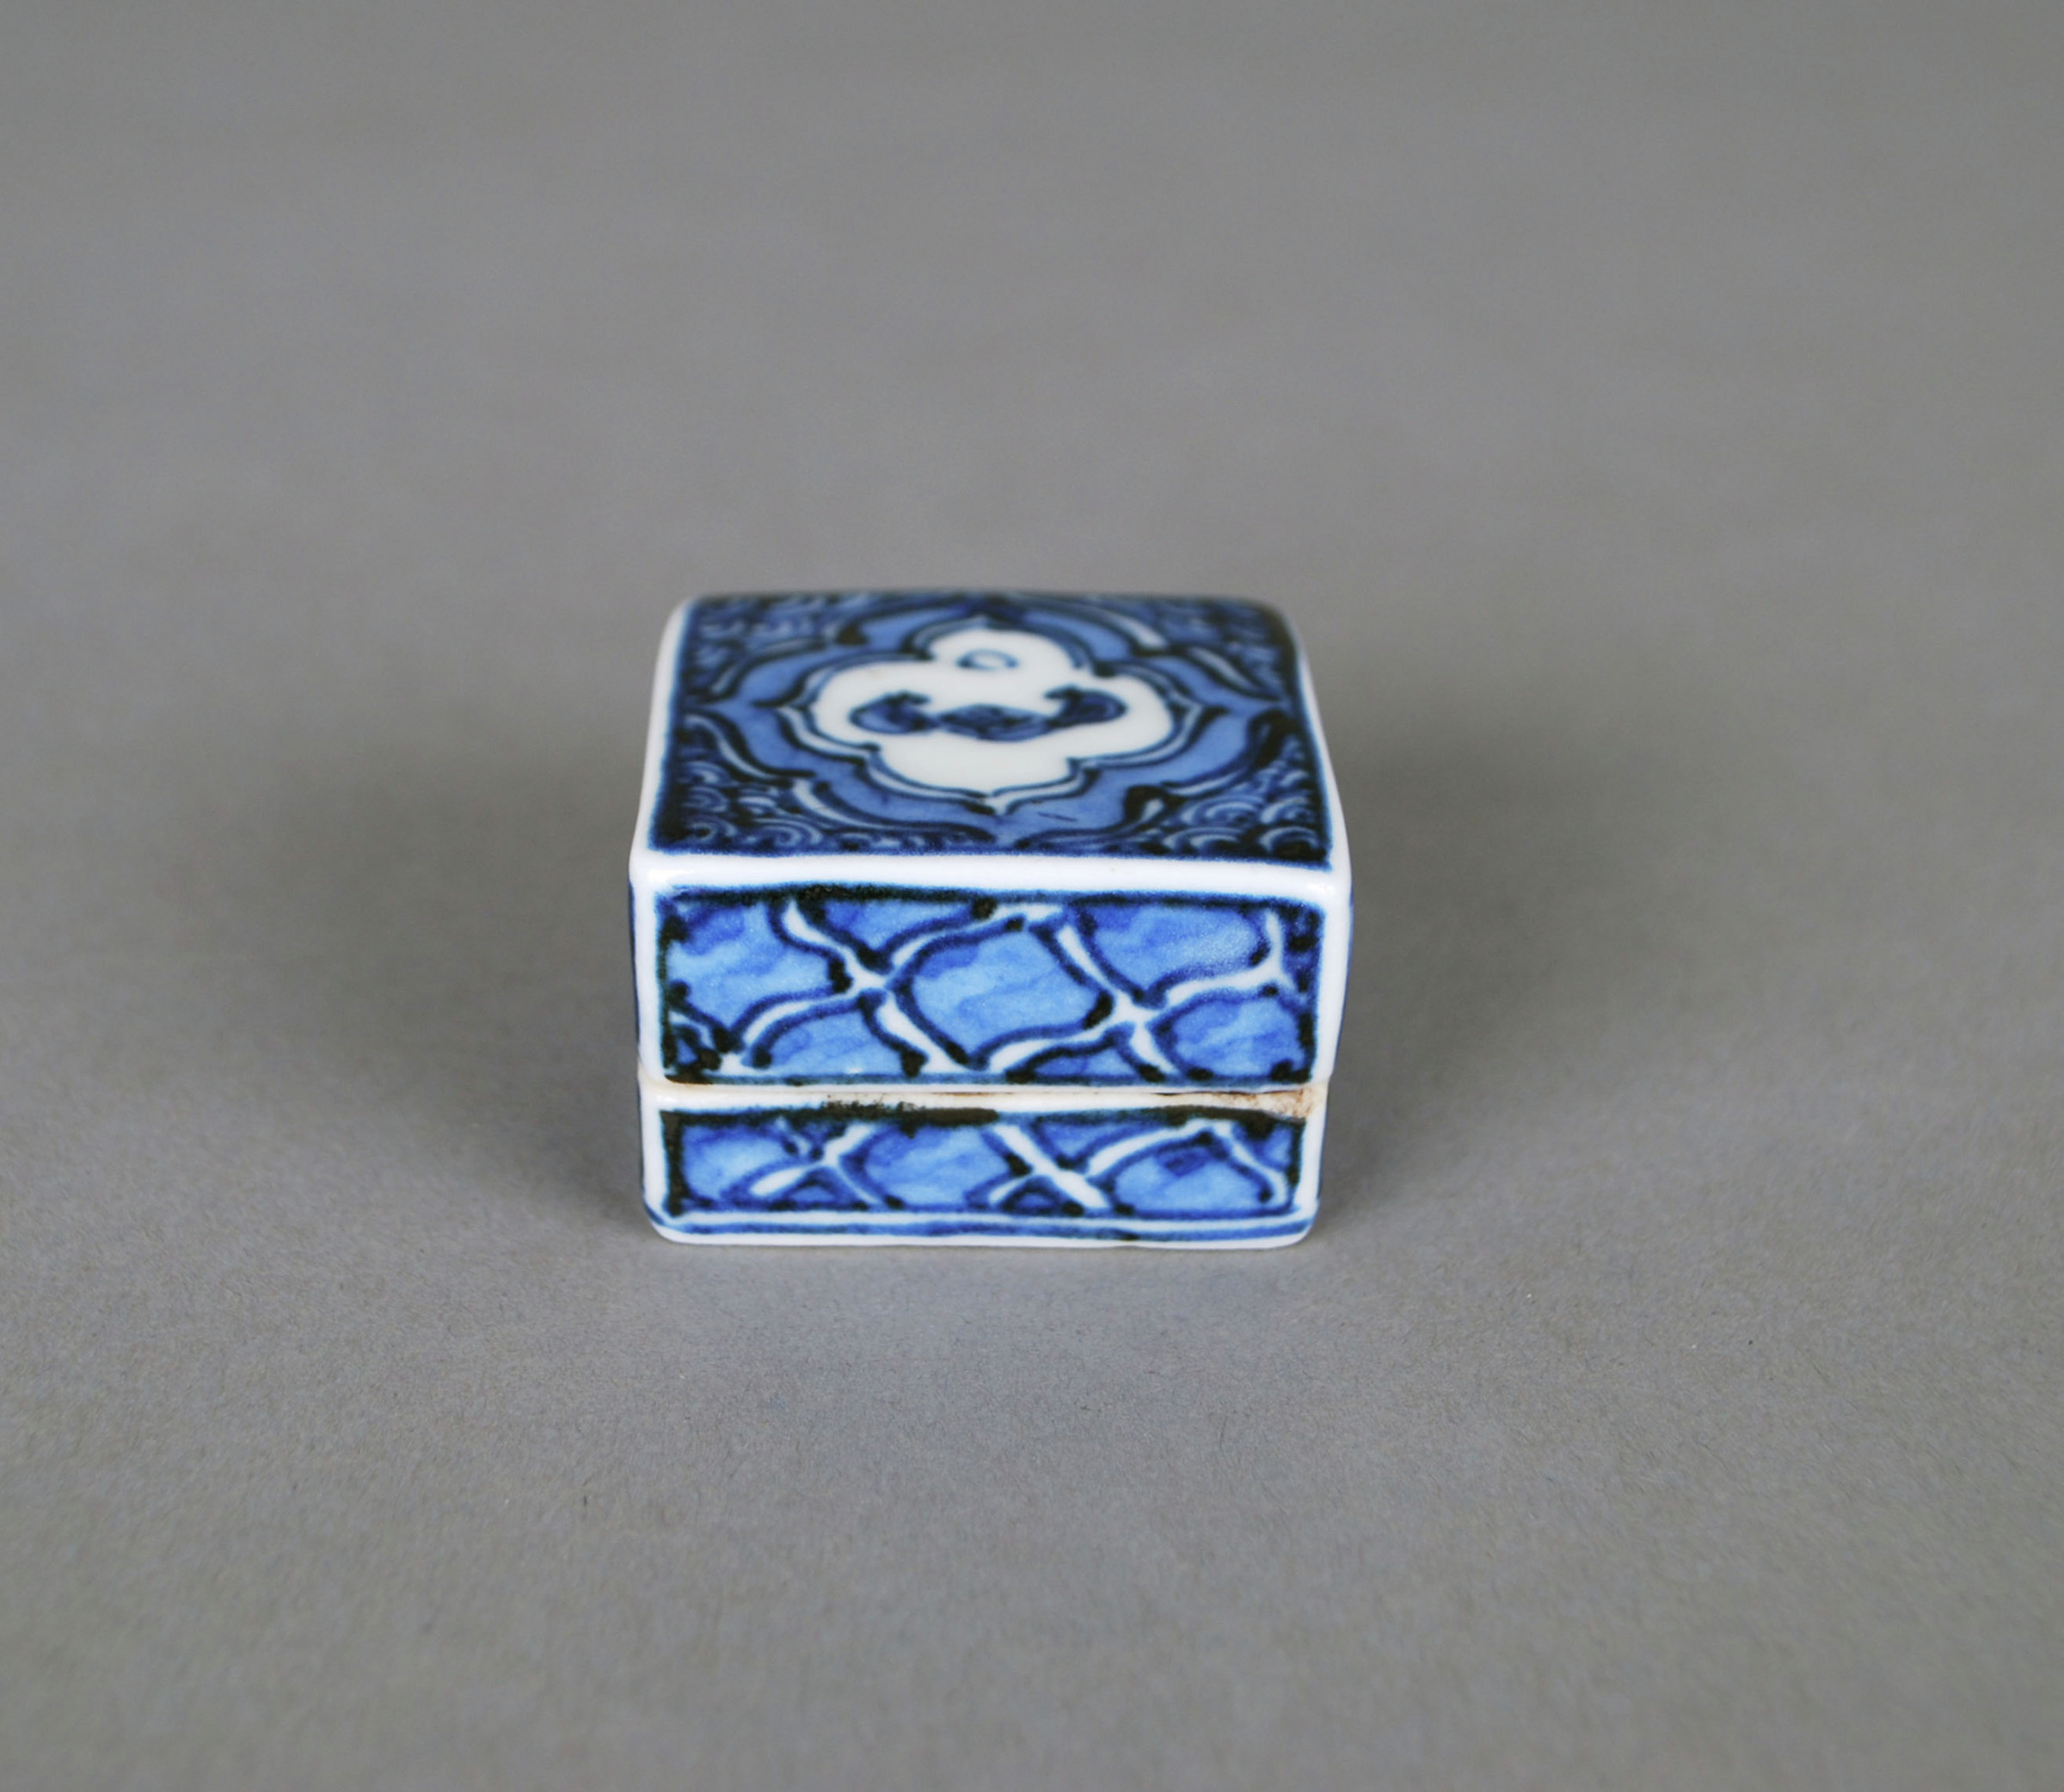 A small, lidded box decorated in blue and white with a bat under the moon and lozenge patterns on the sides.Cube-Shaped Incense Box (Kogo) Painted in Cobalt Blue with Go-Playing under a Moon Motif